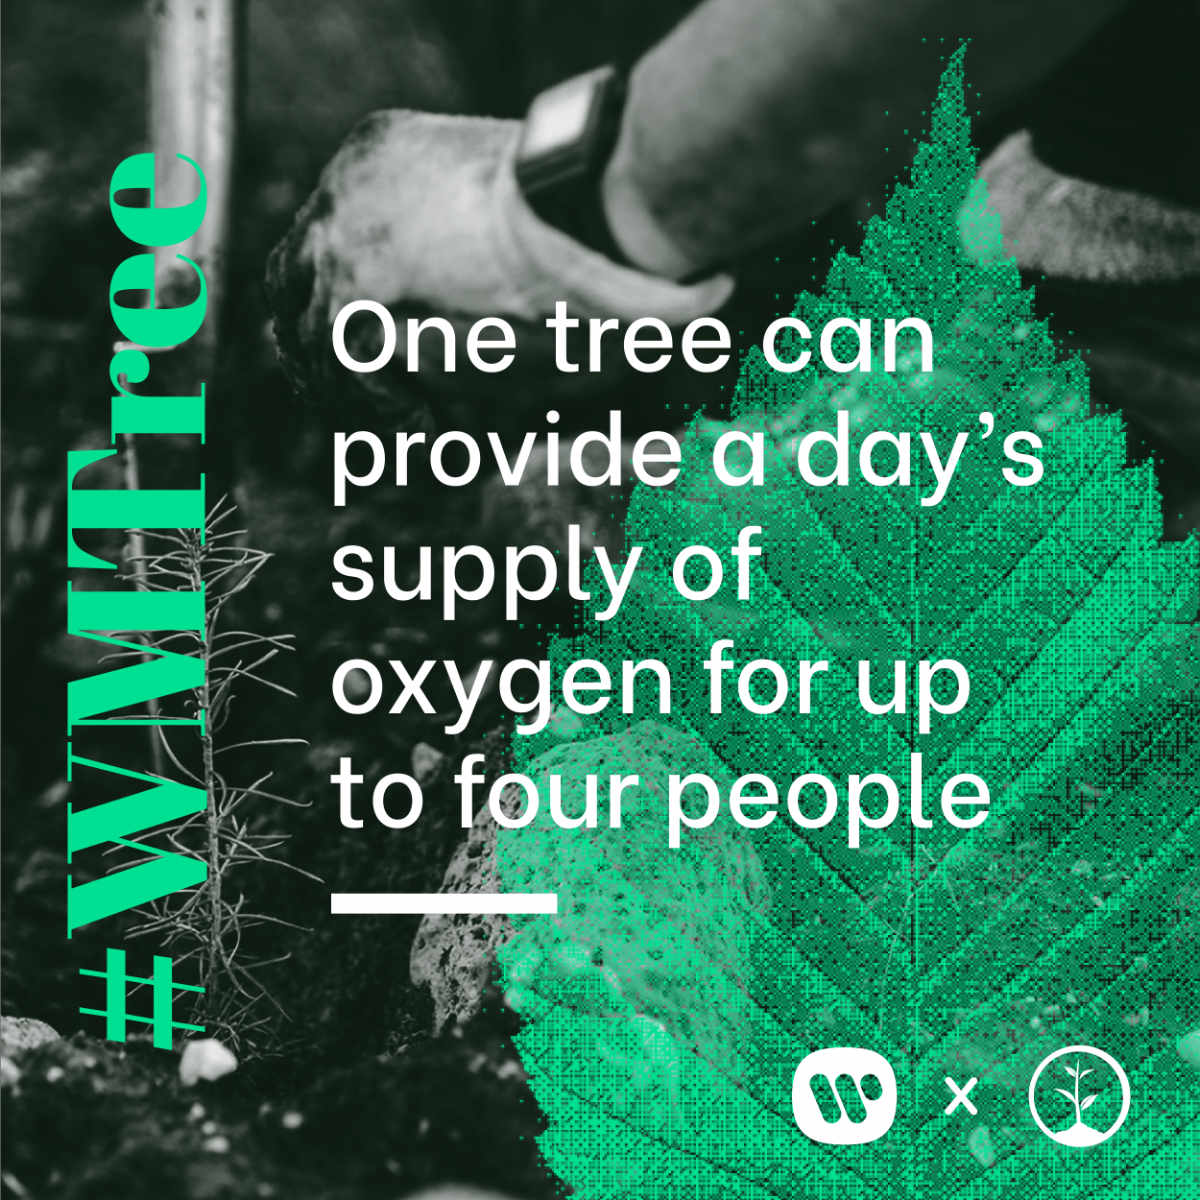 One tree can provide a day's supply of oxygen for up to four people